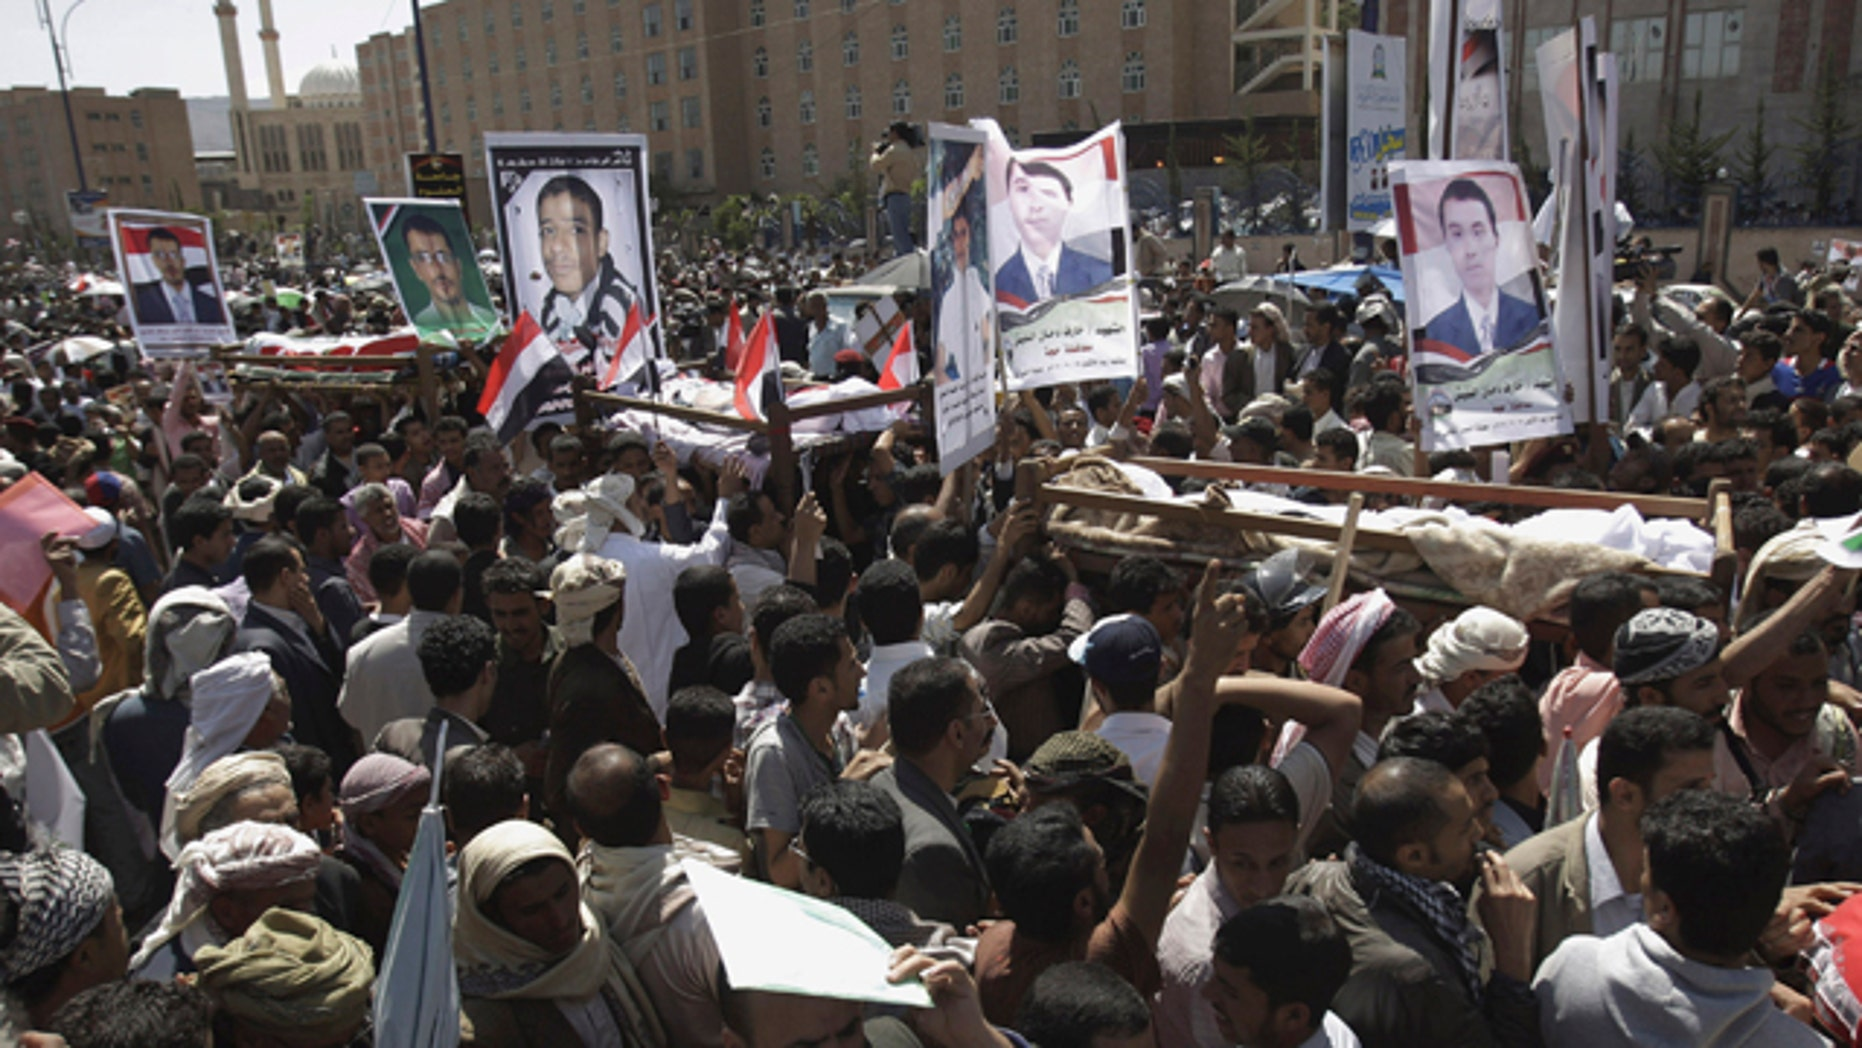 Sept. 21: Anti-government protestors carry the bodies of Yemeni men who were killed in the recent clashes with security forces, during their funeral procession in Sanaa, Yemen.